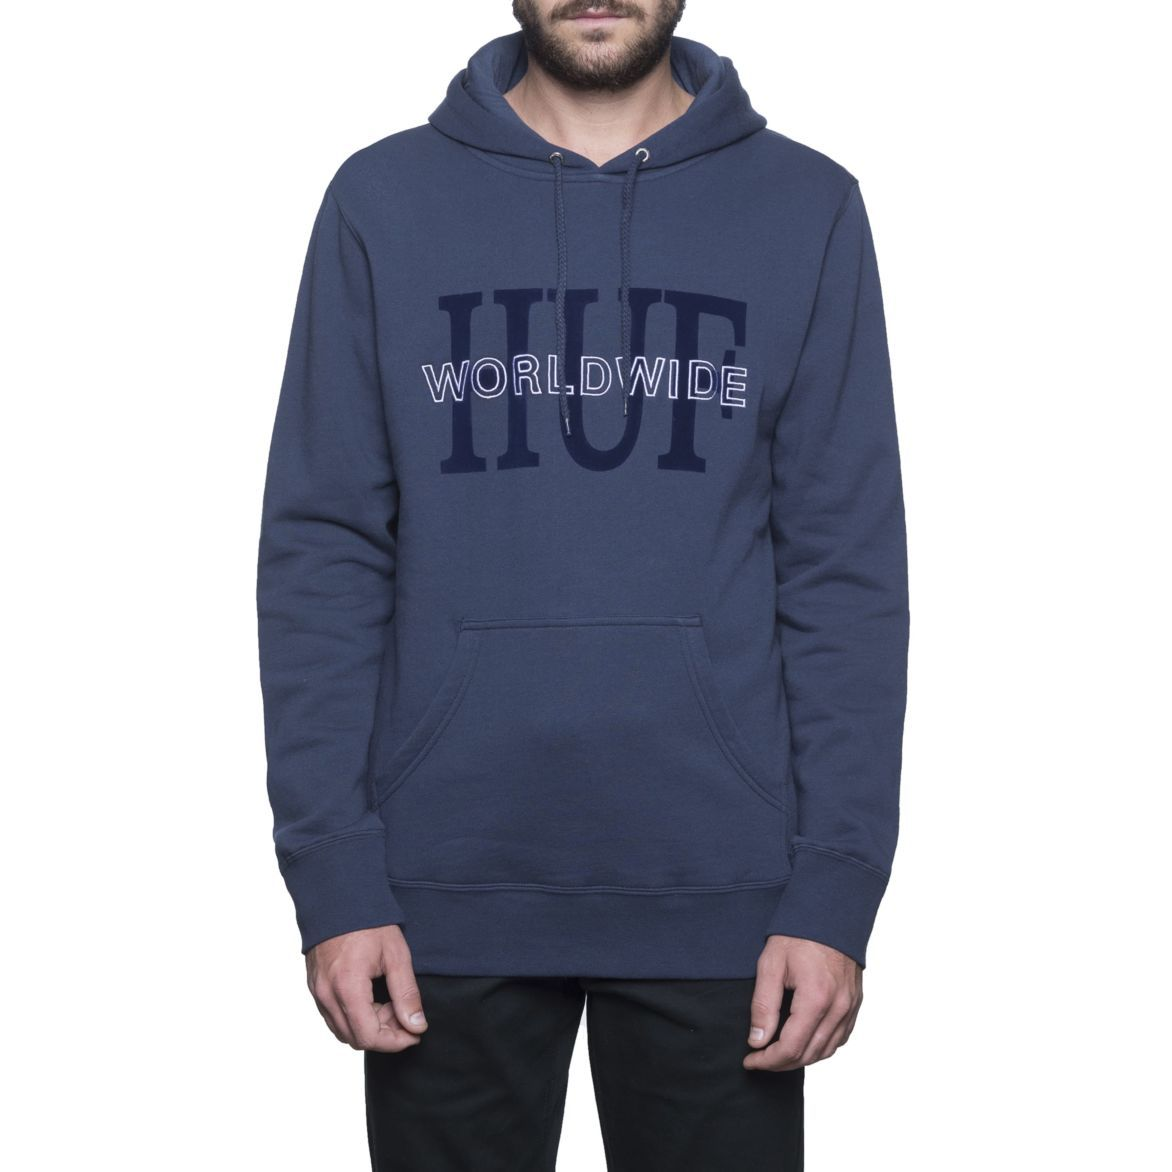 HUF National Pullover Hoodie • 8020 cottonpoly 330 gram